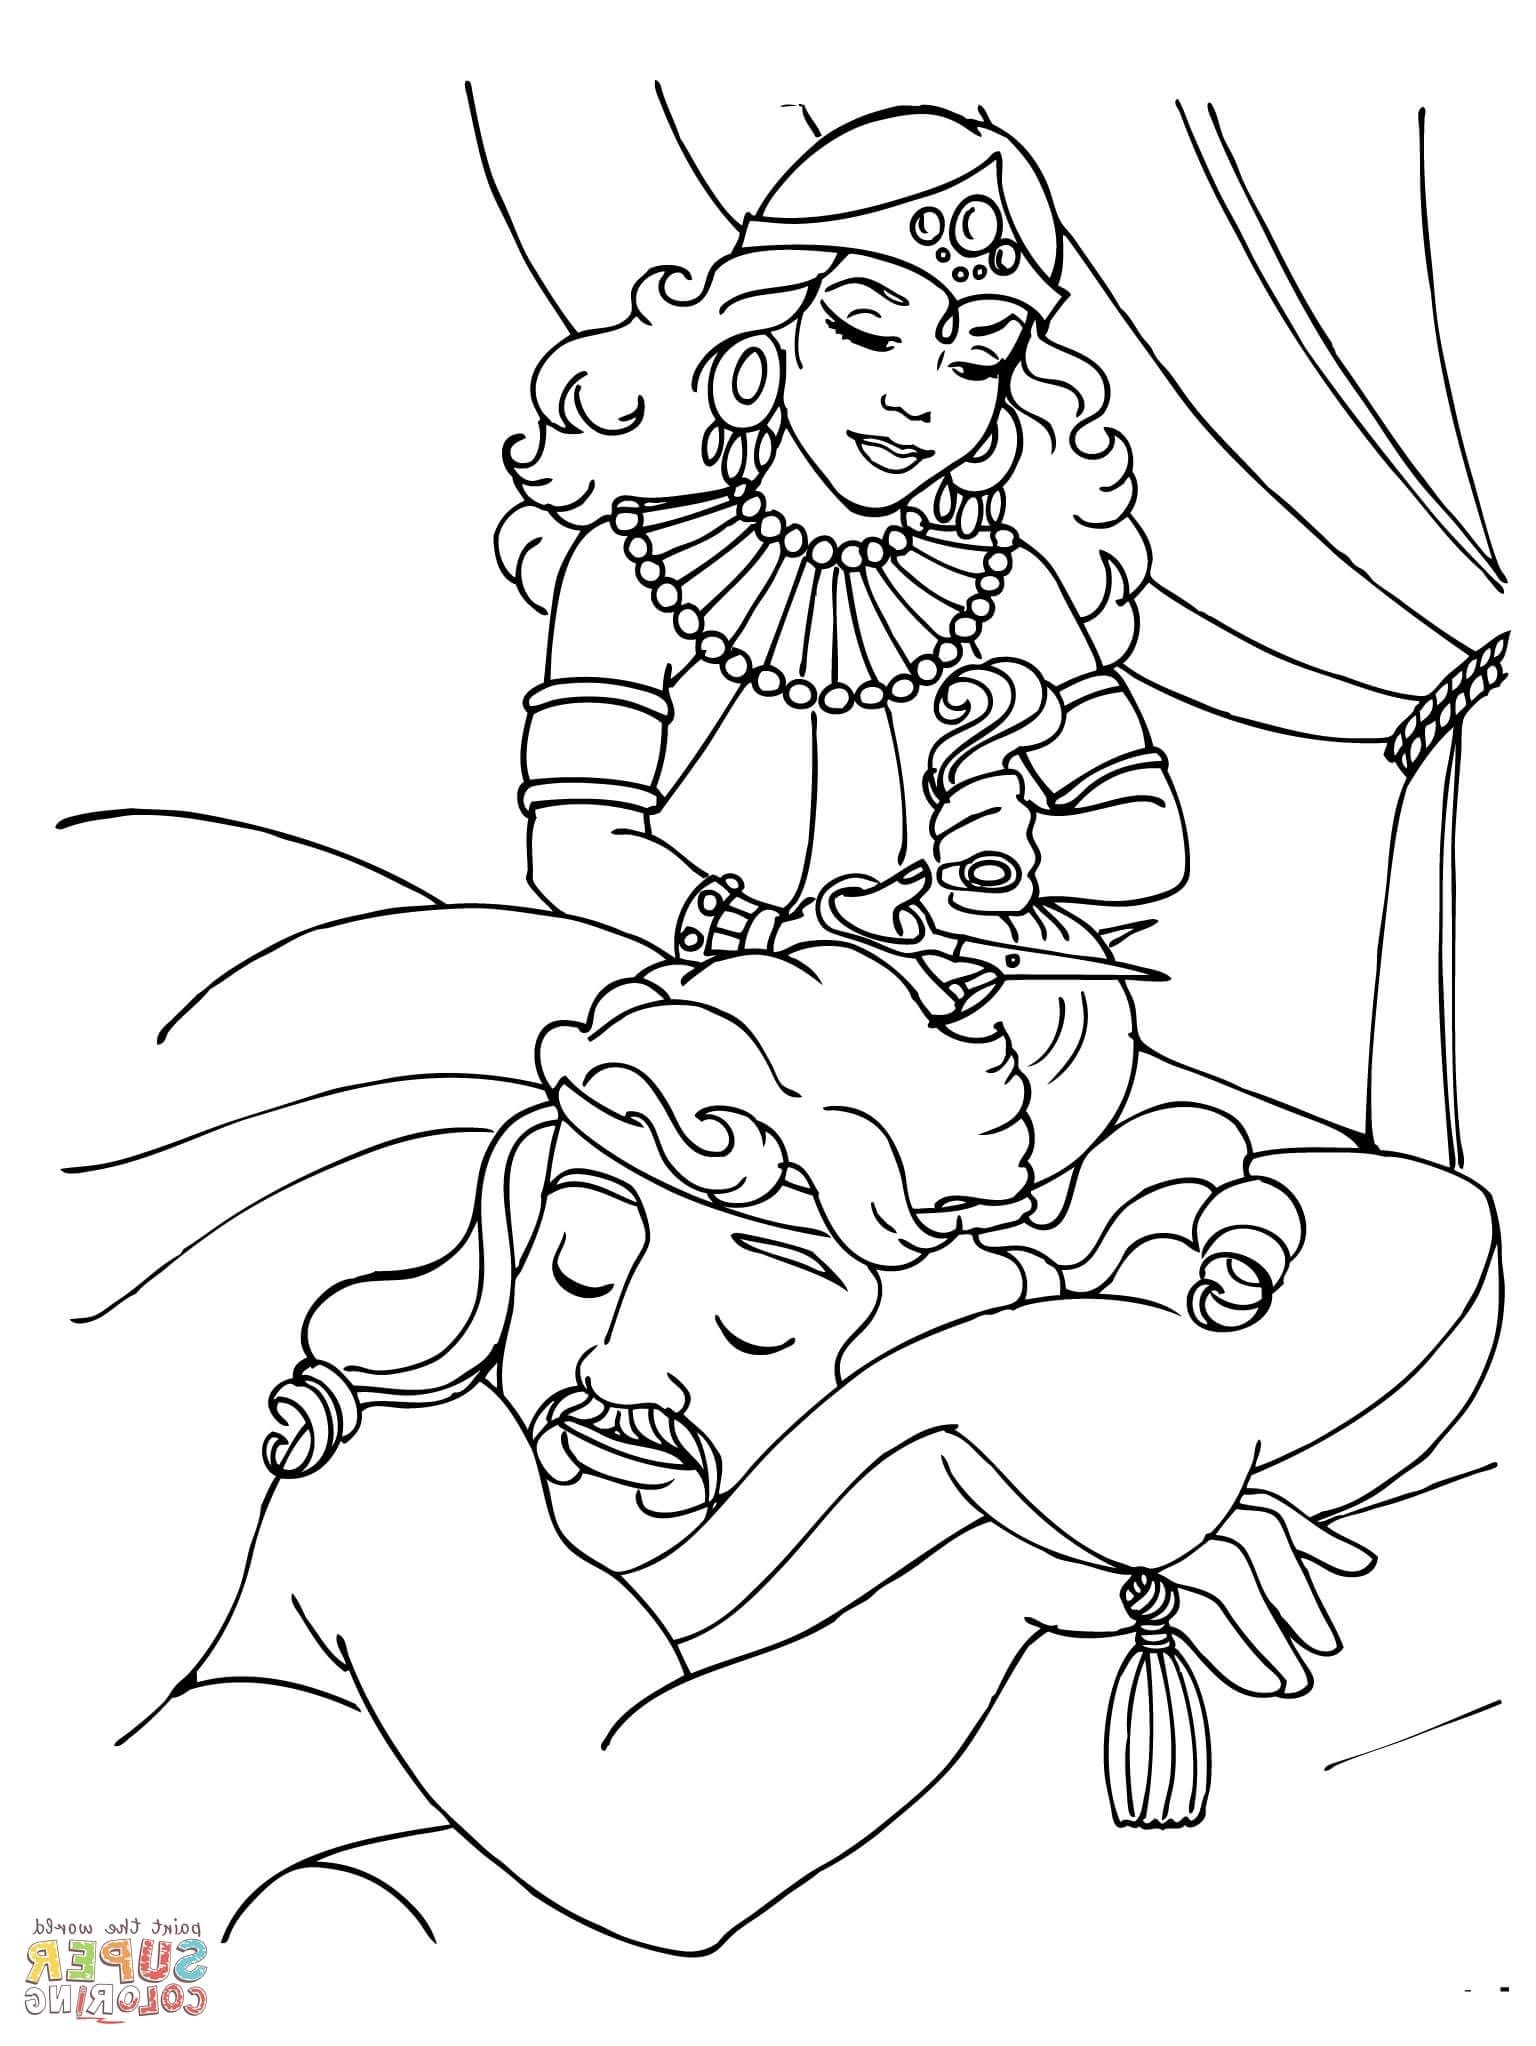 Samson Coloring Pages | Lion coloring pages, Coloring ...